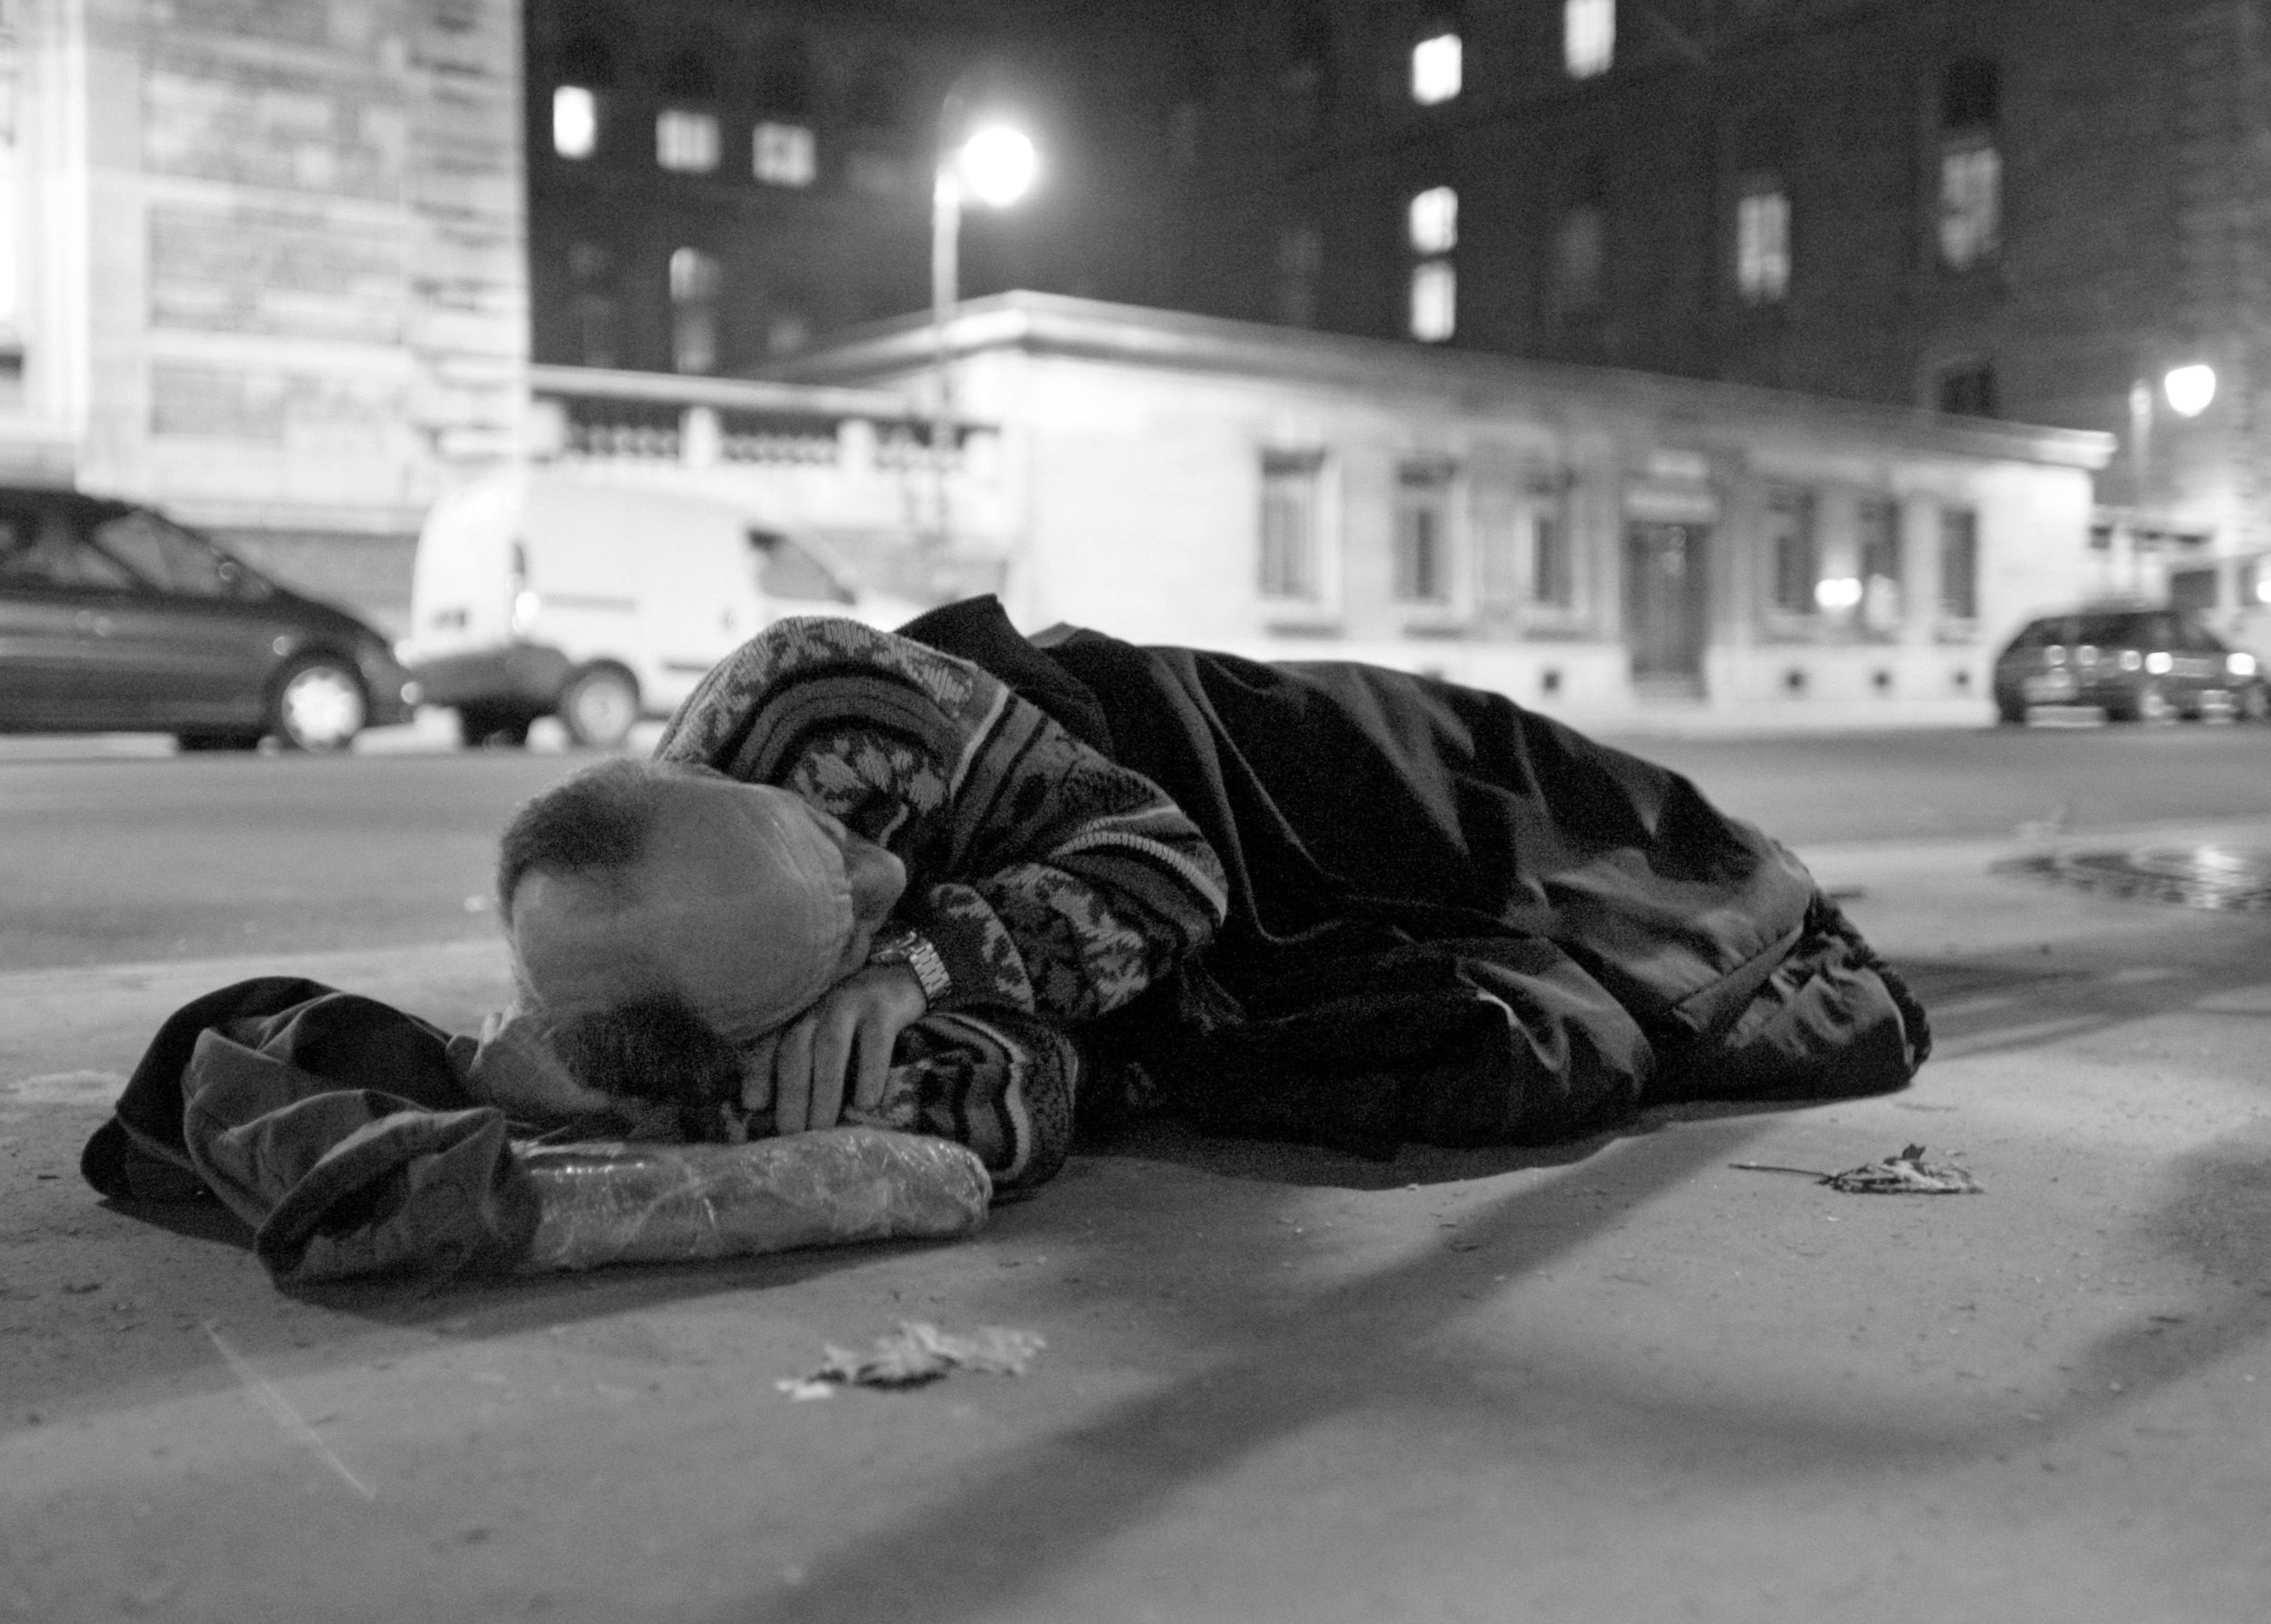 Homeless-Man1.jpg